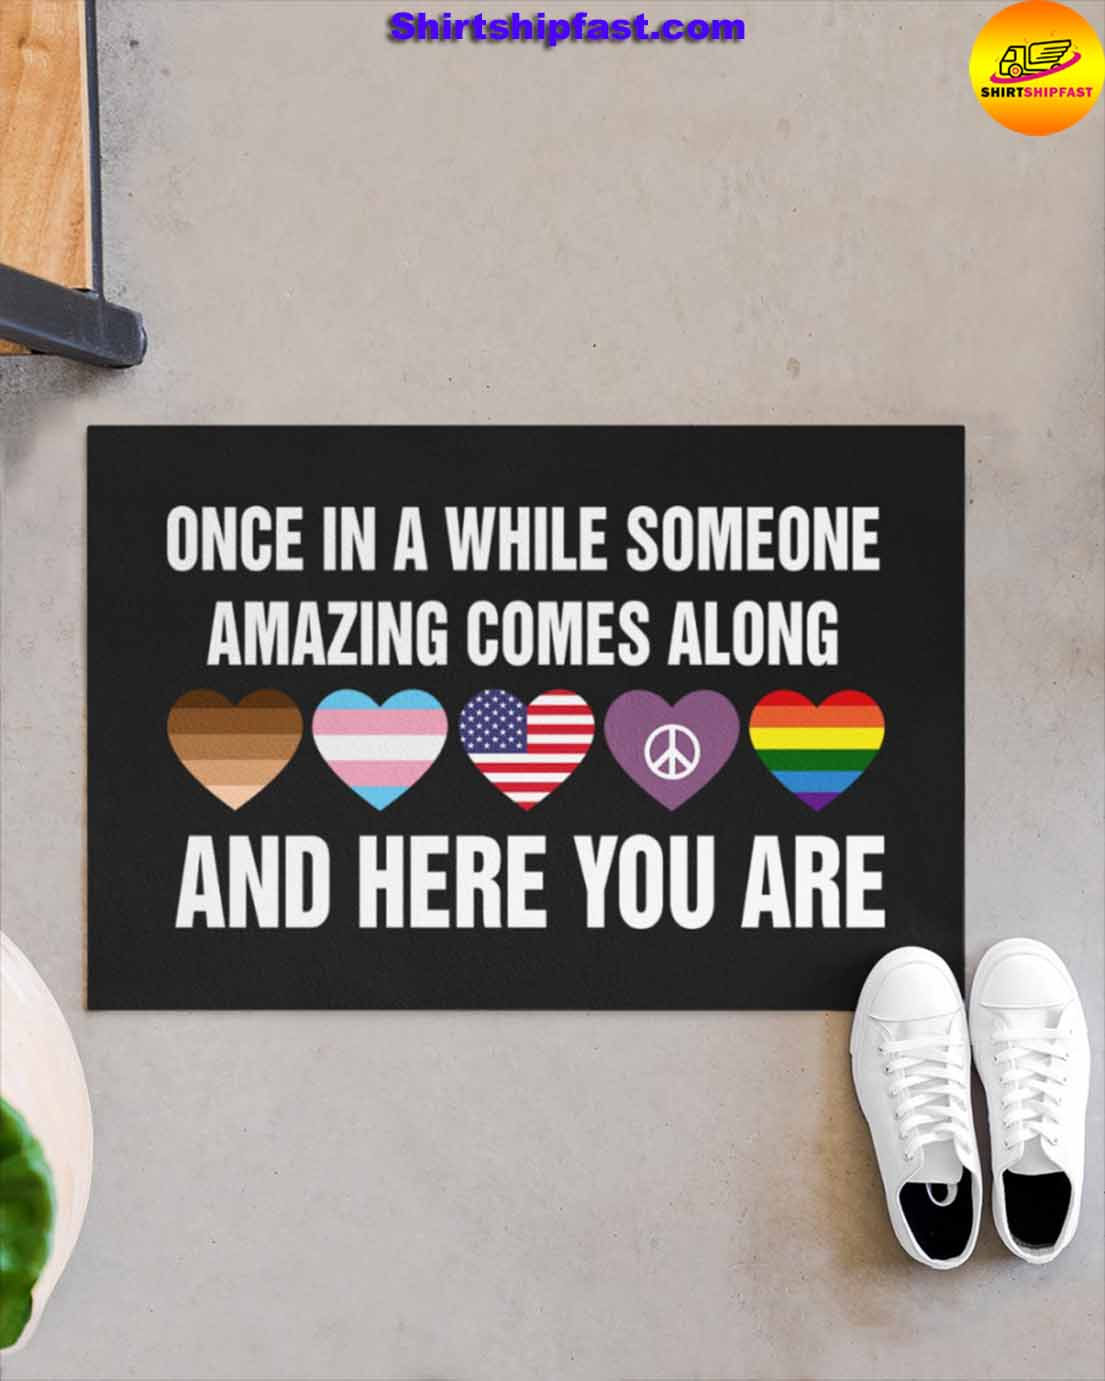 LGBT heart Once in a while someone amazing comes along and here you are doormat - Picture 1